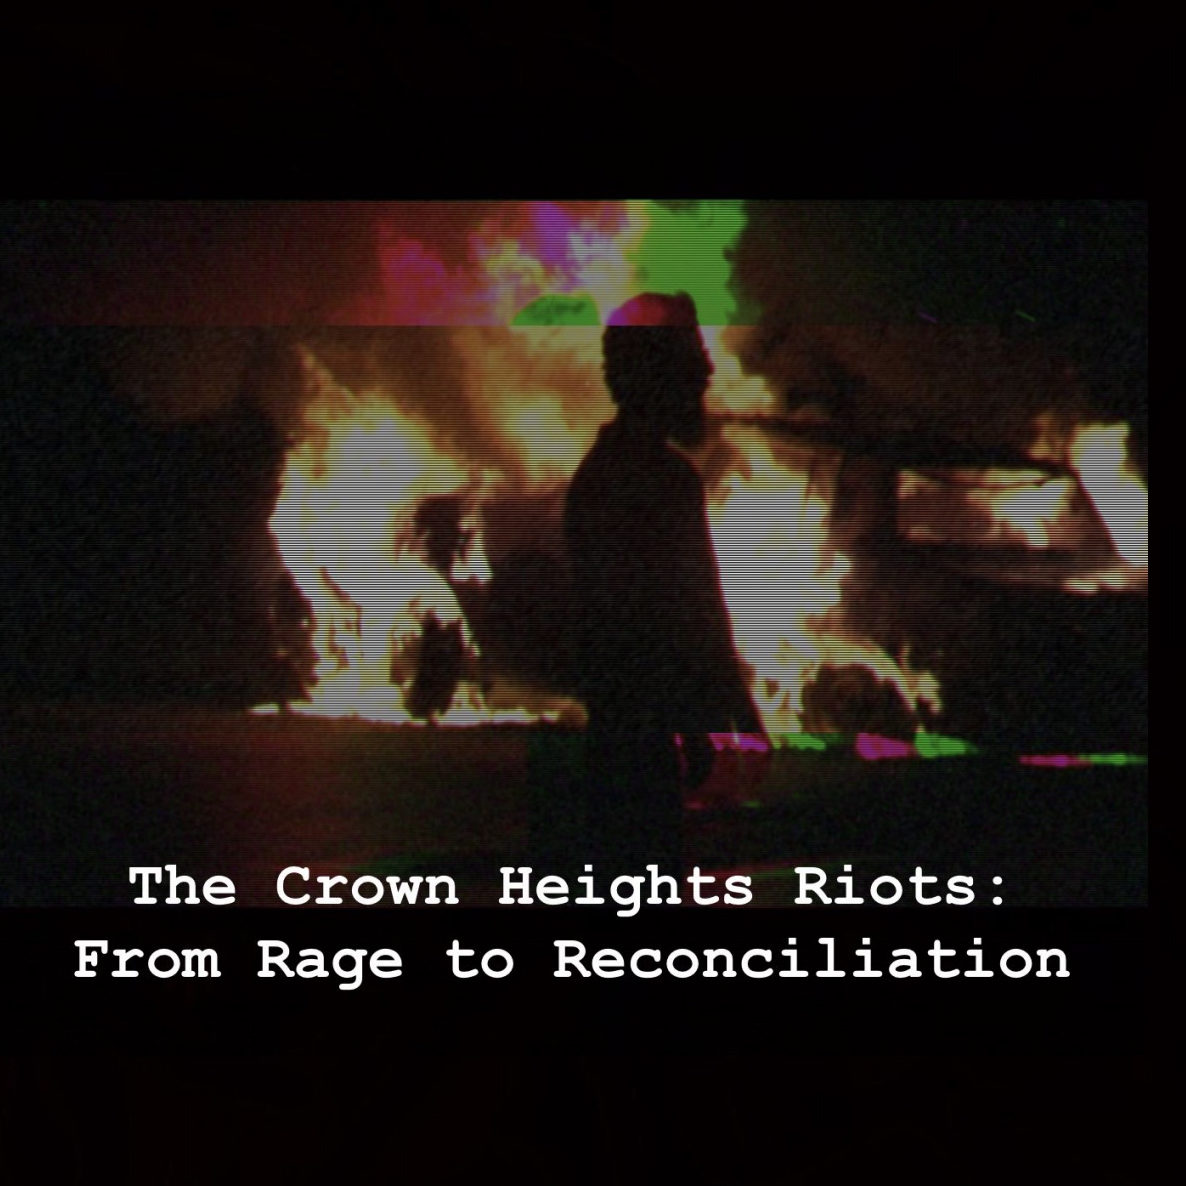 The Crown Heights Riots: From Rage to Reconciliation byAlexander Fezza